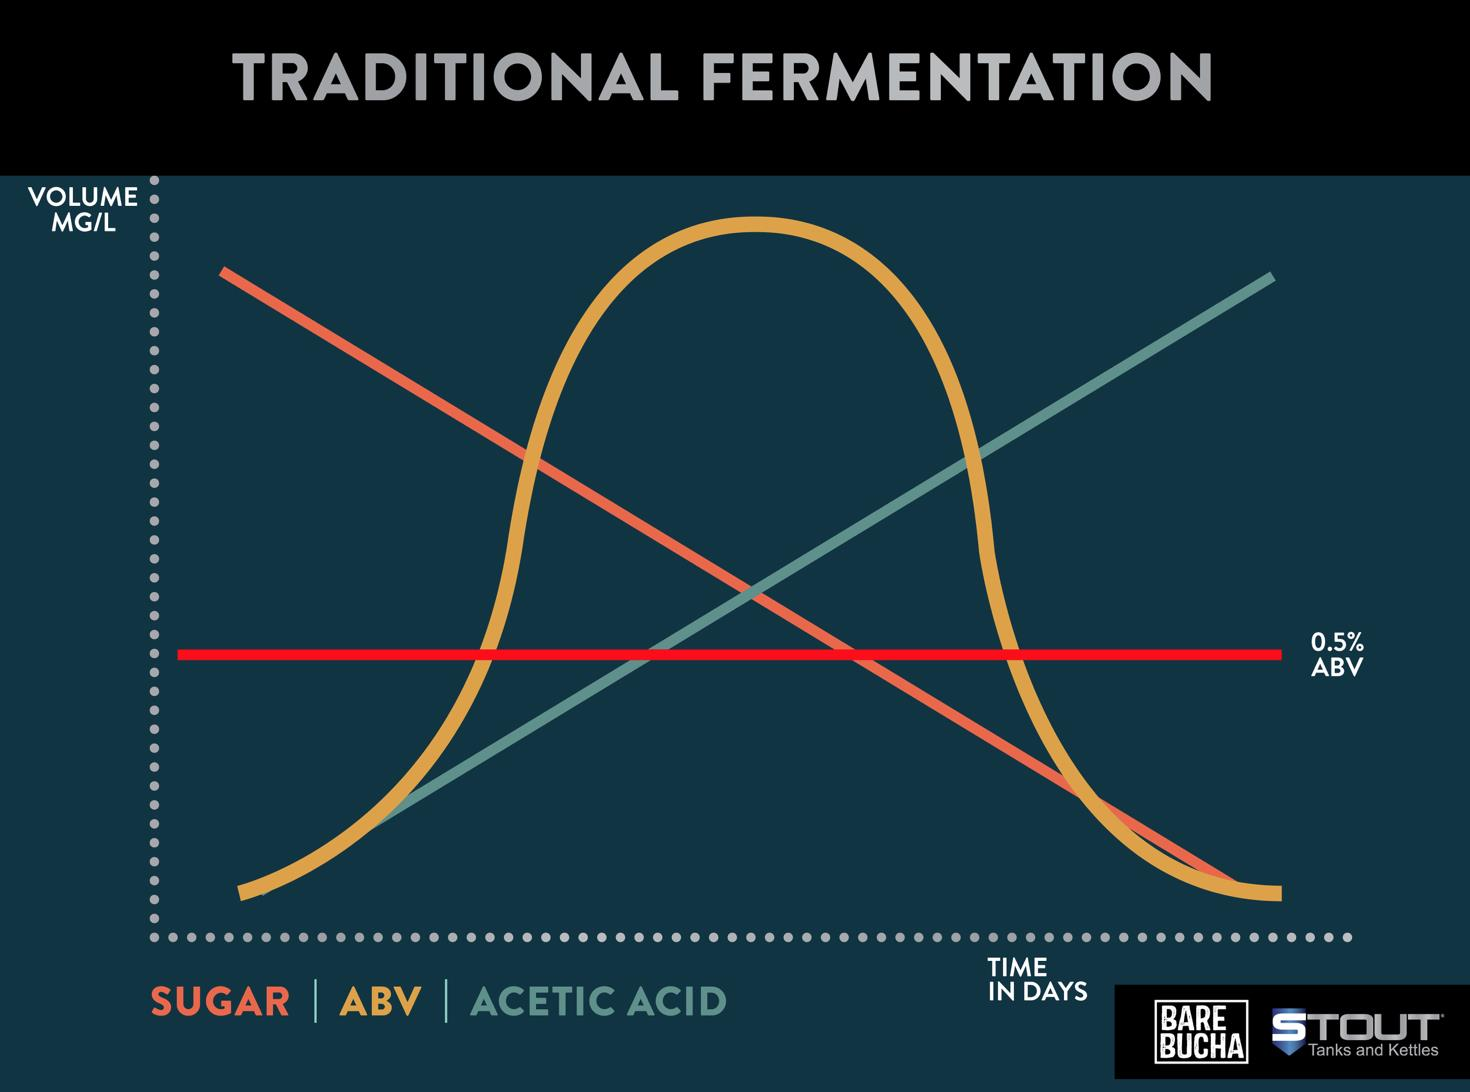 Chart showing traditional fermentation